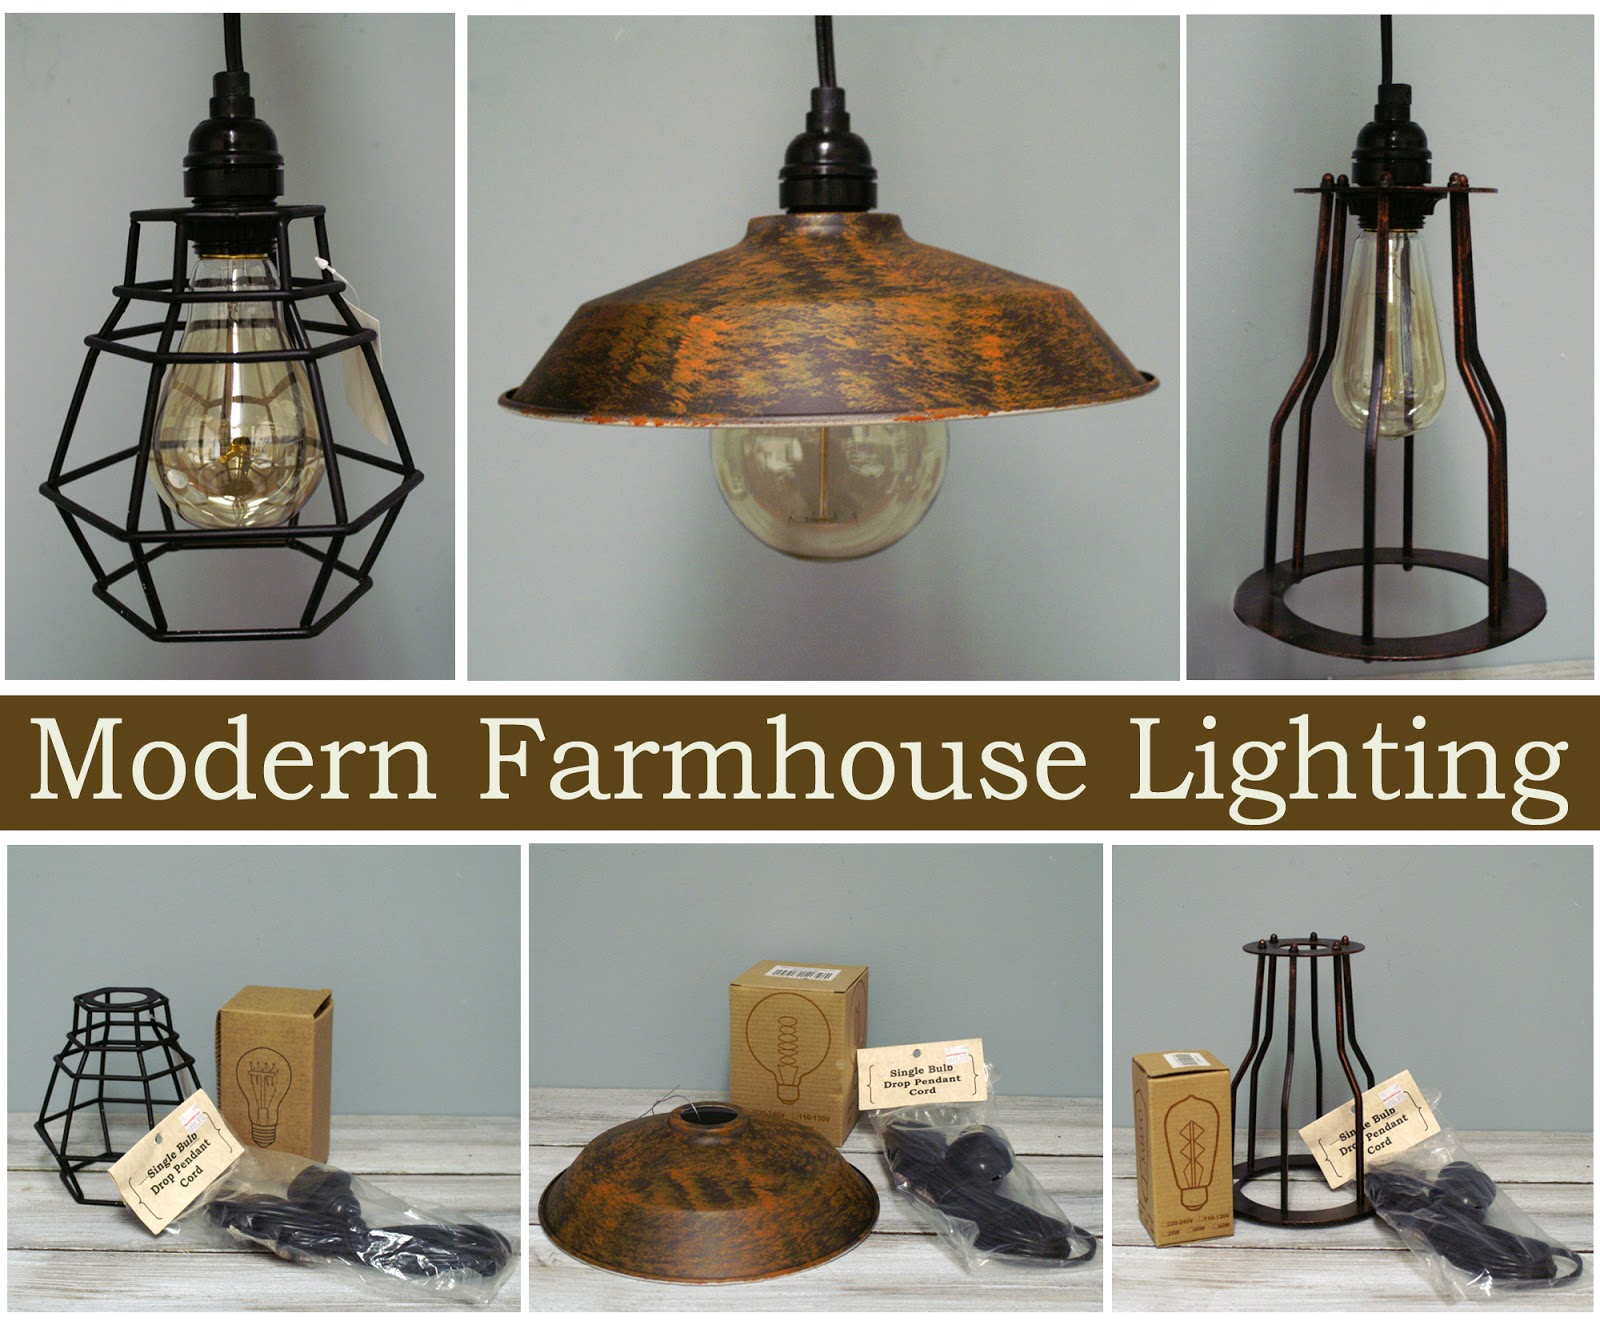 Ben Franklin Crafts and Frame Shop Modern Farmhouse Lighting At Ben Franklin